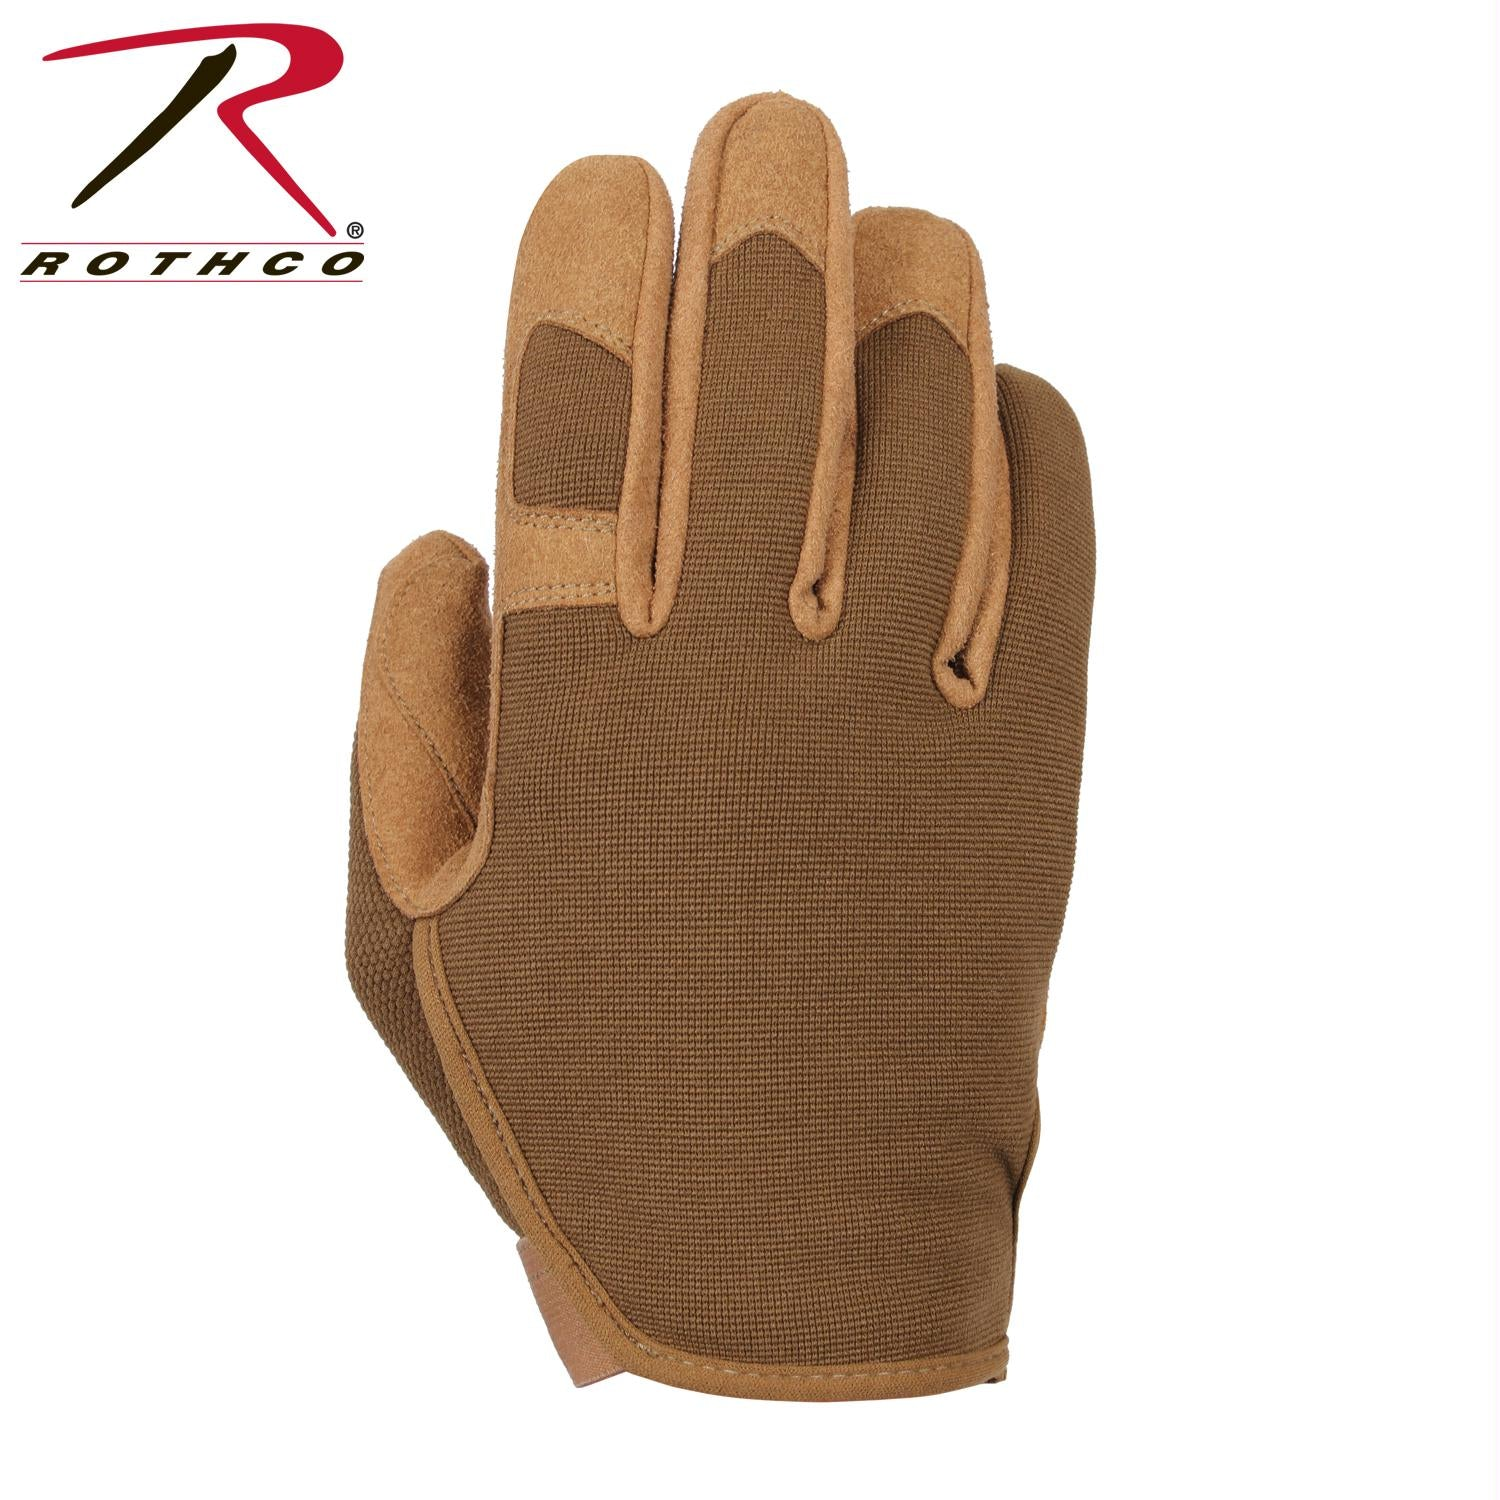 Rothco Ultra-light High Performance Gloves - Coyote Brown / L